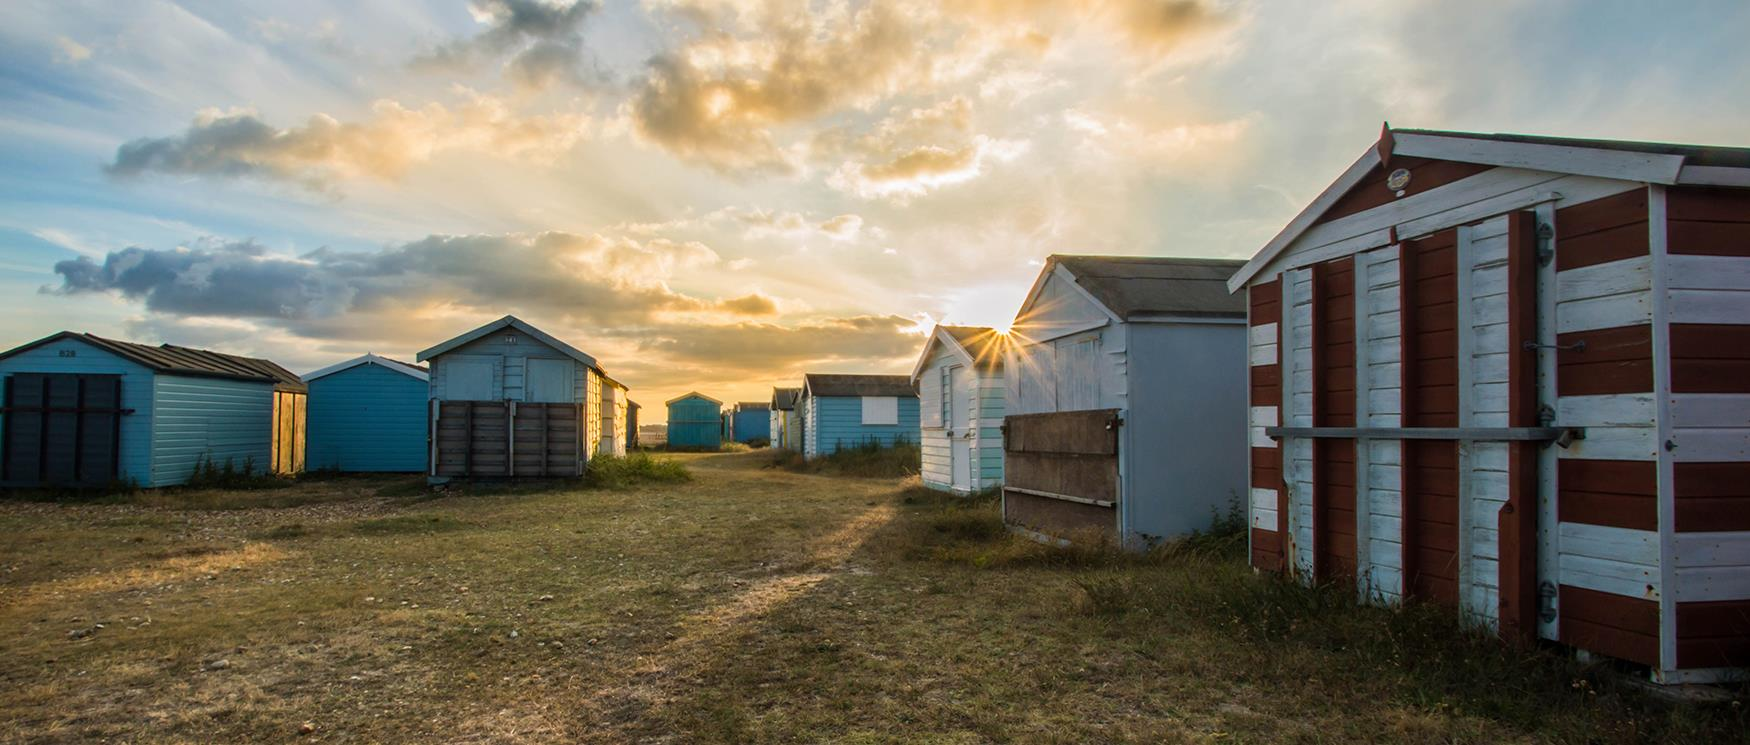 Hayling Island Beach Huts - Darin Goodsell 2017 Summer Winner